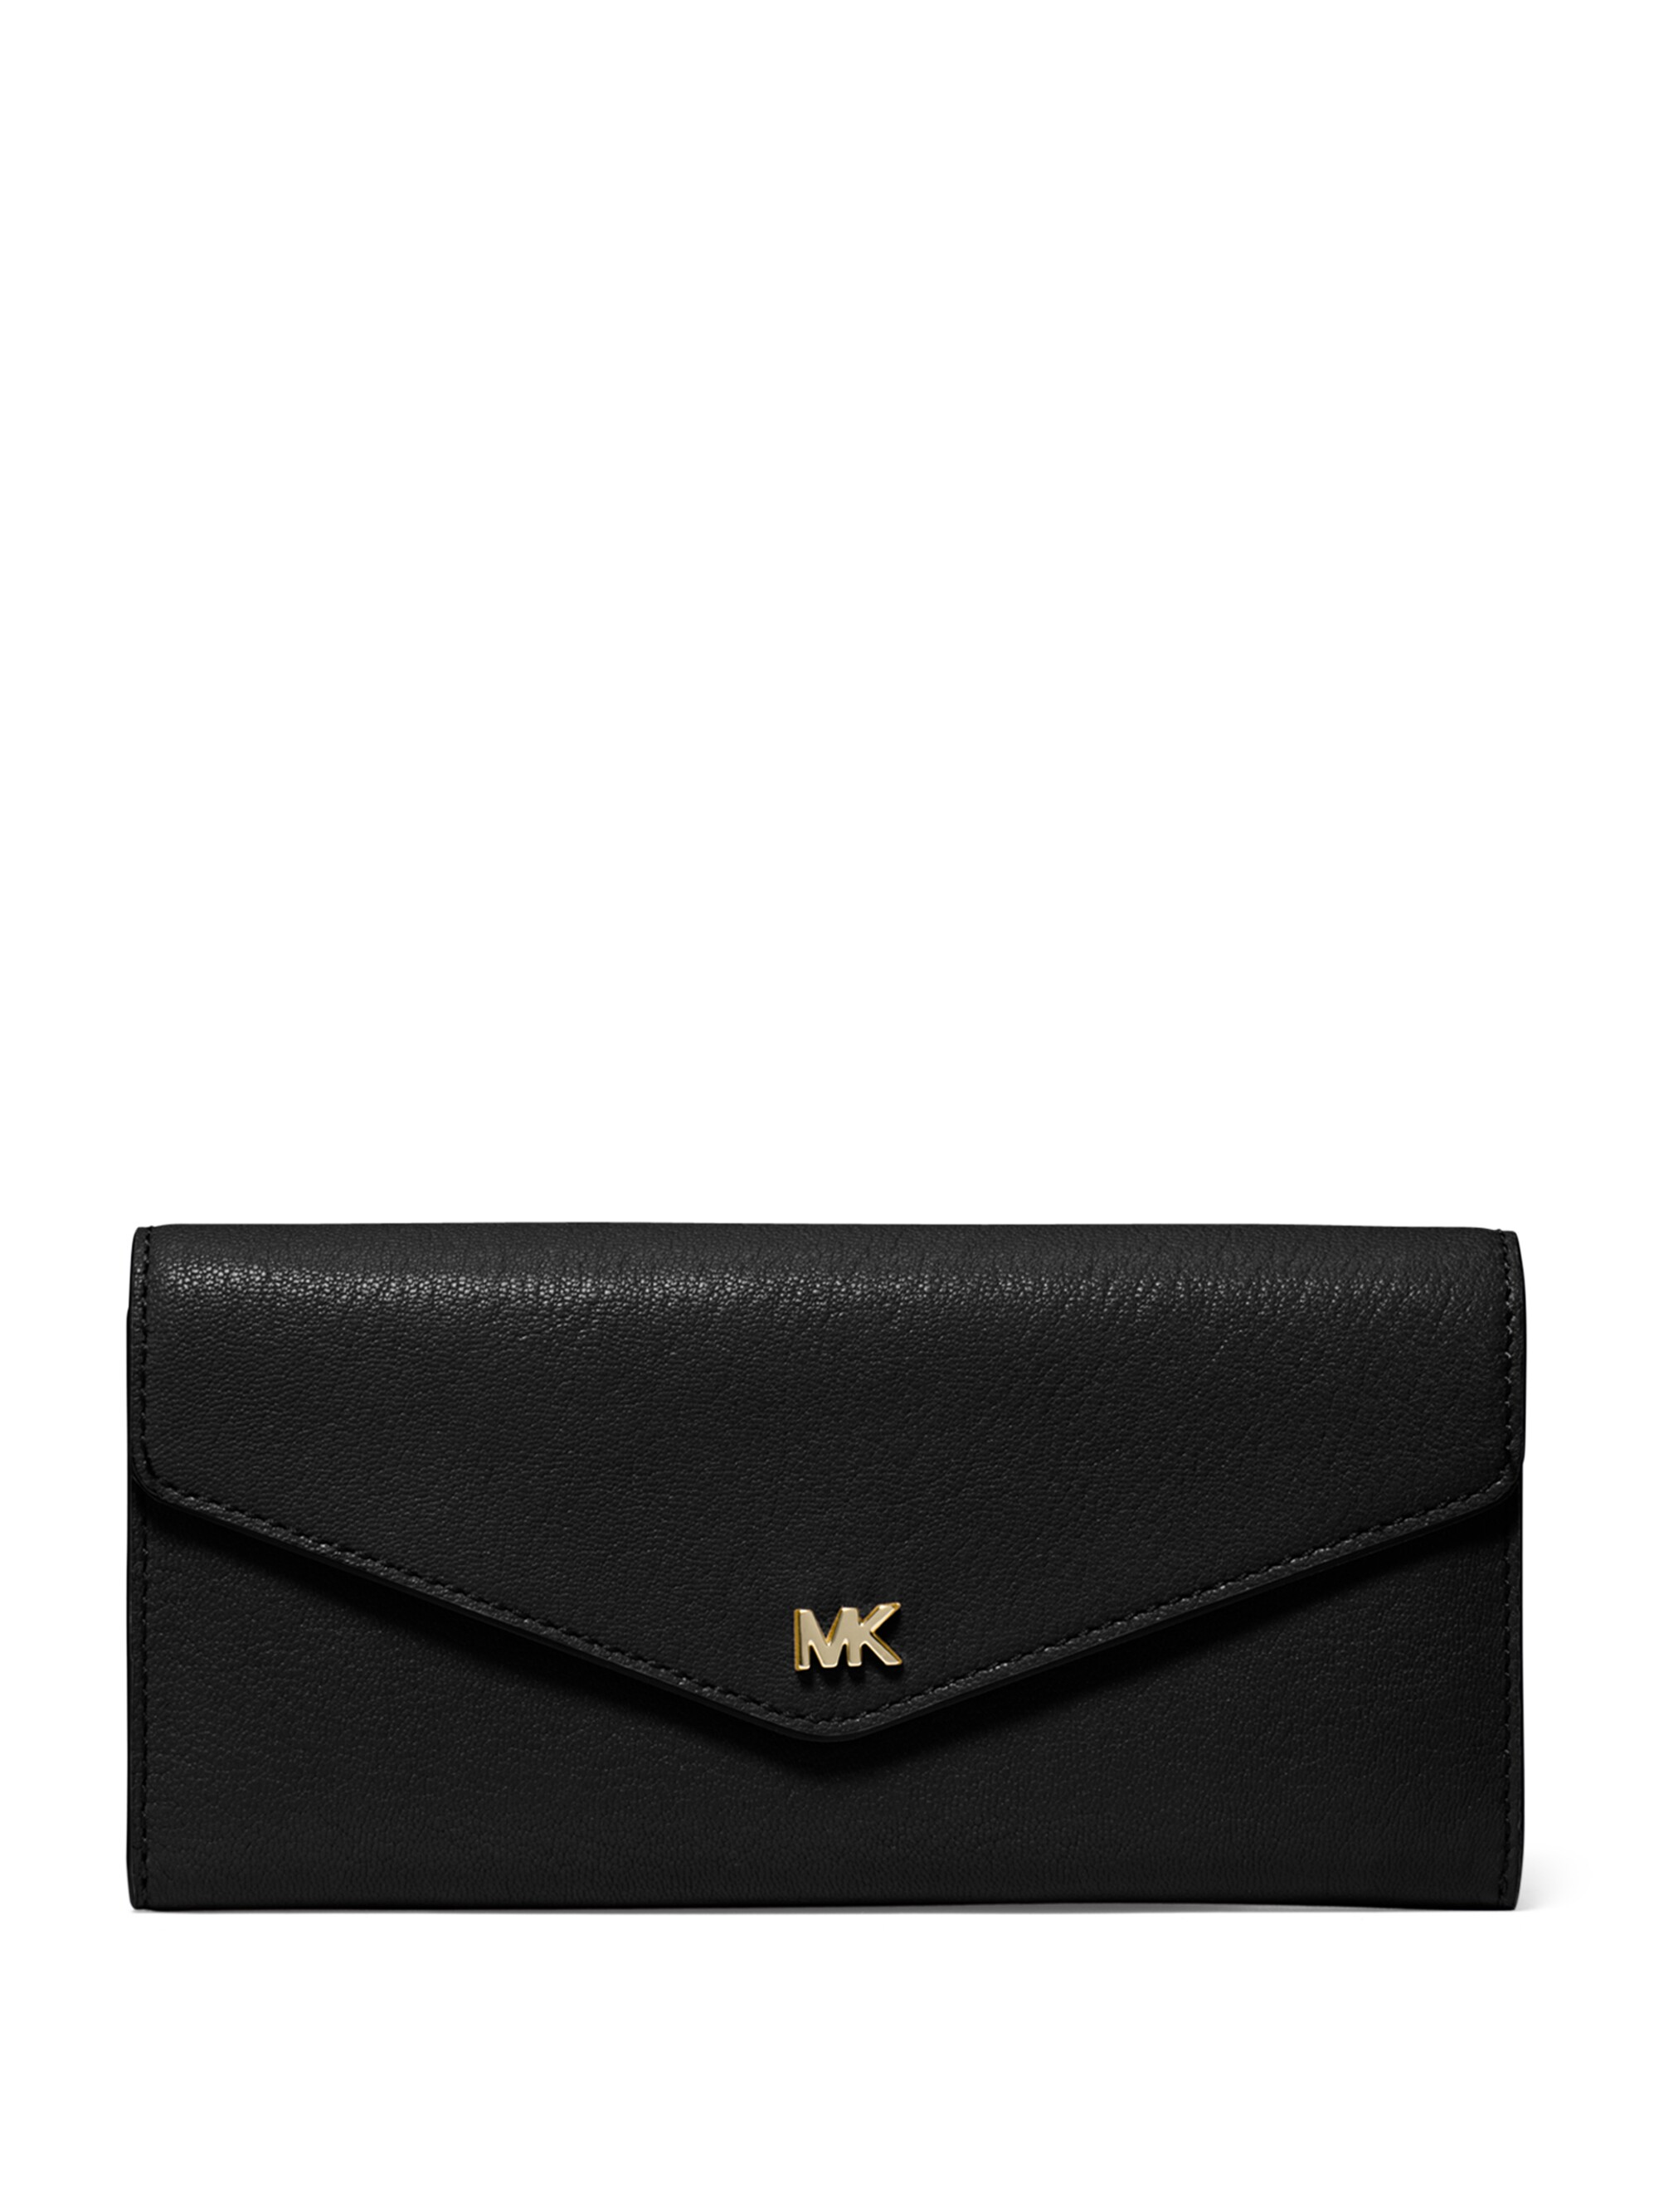 Lord & Taylor Michael Kors Envelope Clutch